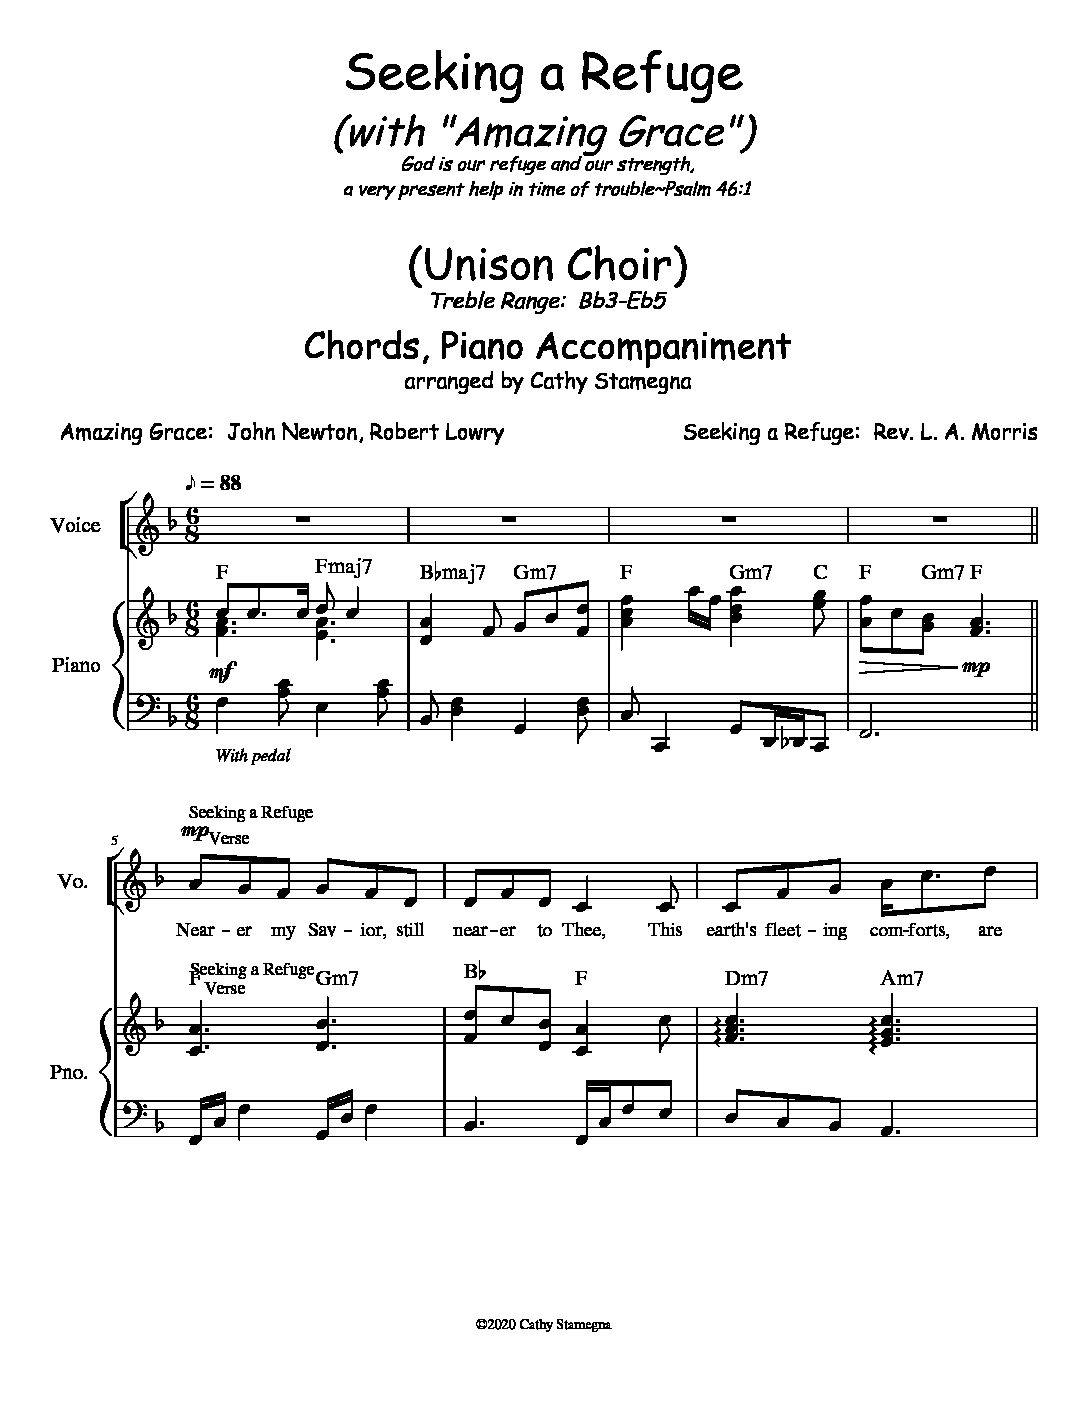 "Seeking a Refuge (with ""Amazing Grace"") (Chords, Piano Accompaniment) for Unison, 2-Part Choir; Vocal Solo"